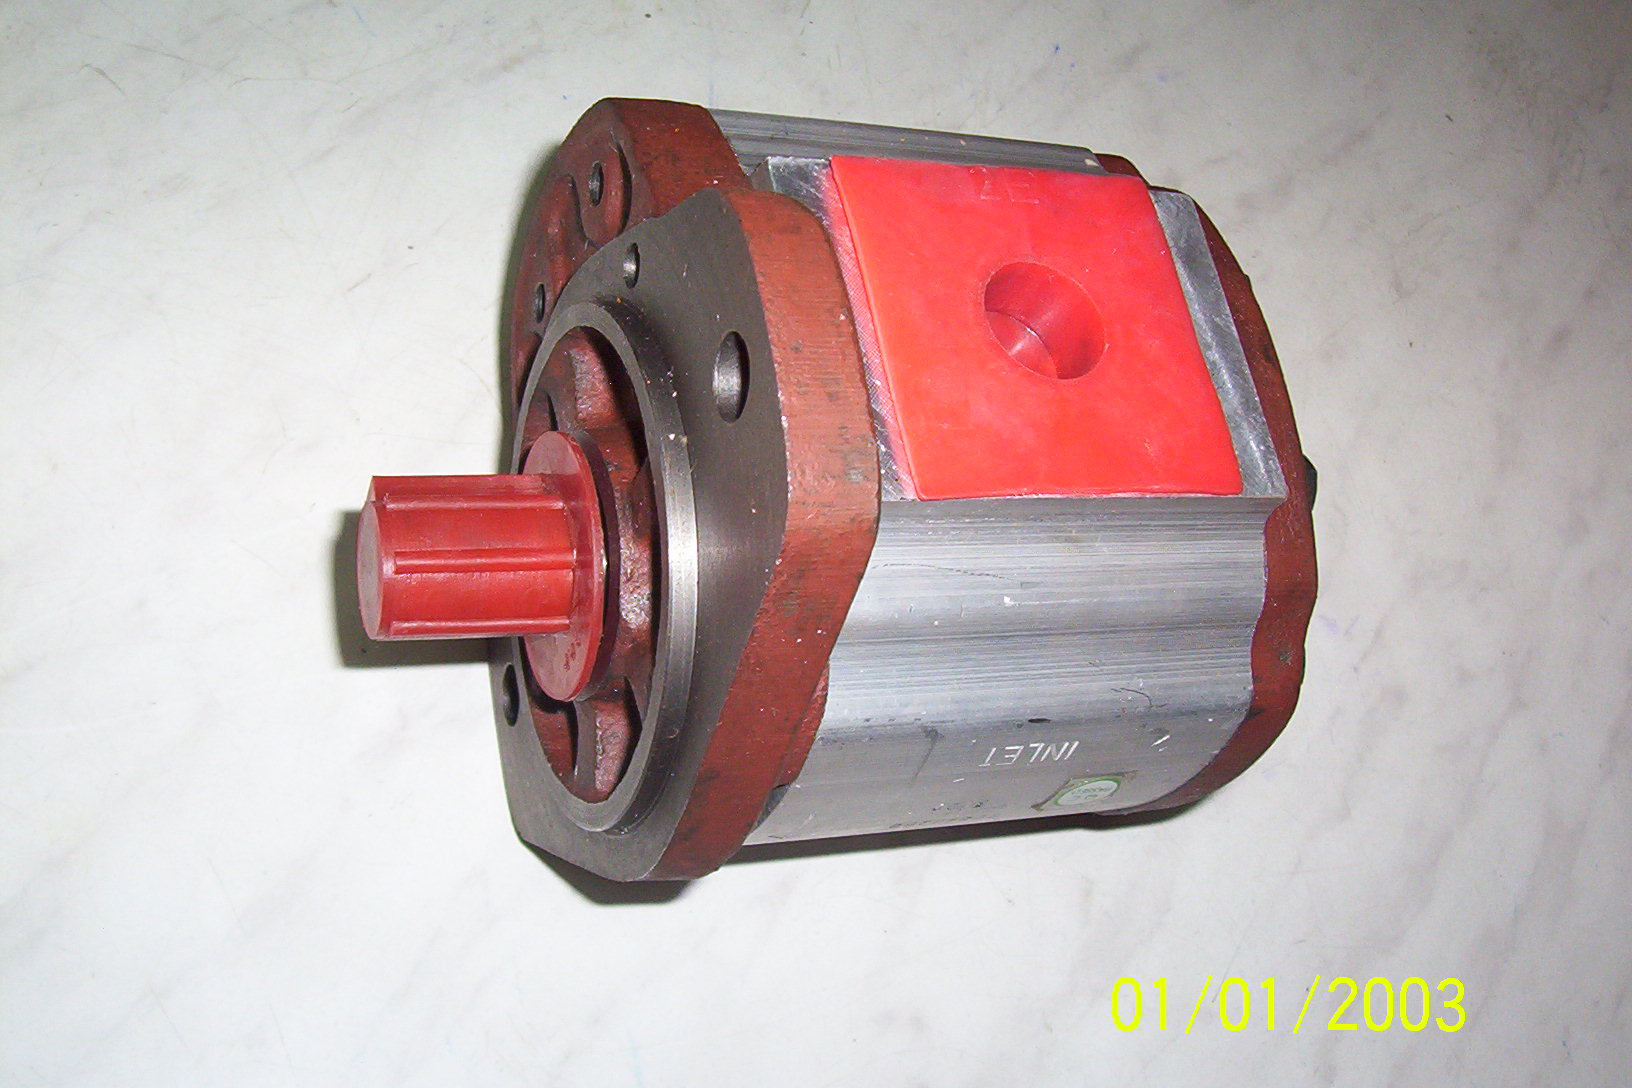 Hydraulic System Spares Supplier In Mumbai   We mainly deal in following items: Hydraulic flex Hoses Gear Pumps Flow control valves Hydraulic Cylinders Cylinder seal kits Direction Control Valves Pressure Relief Valves Seamless Pipe Lancing Pipe Hydraulic Pipe Fittings Filters Pressure Gauges